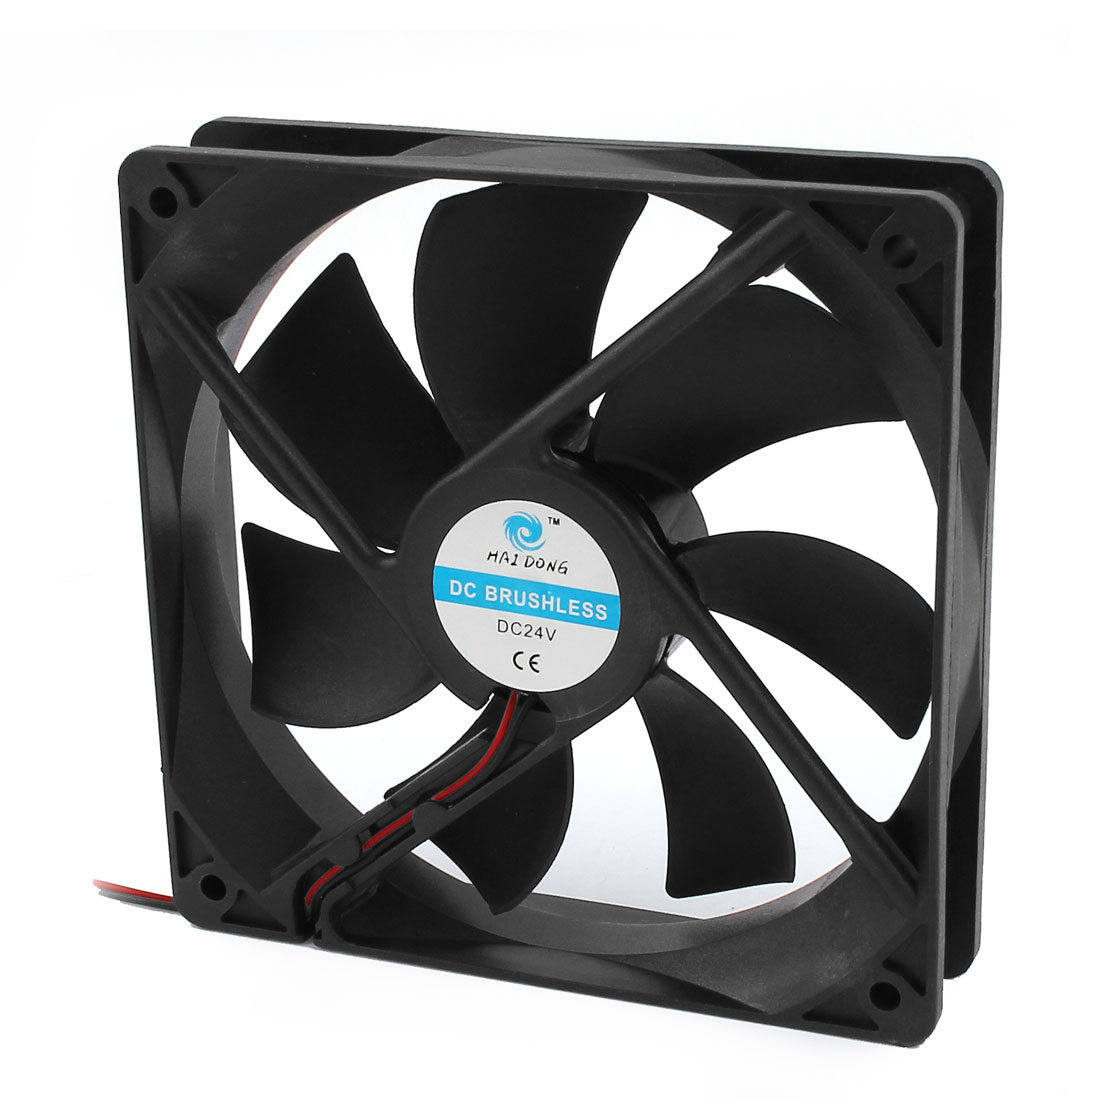 120mm x 25mm 12025 DC 24V Brushless Computer Case Cooling Fan w Dustproof Mesh